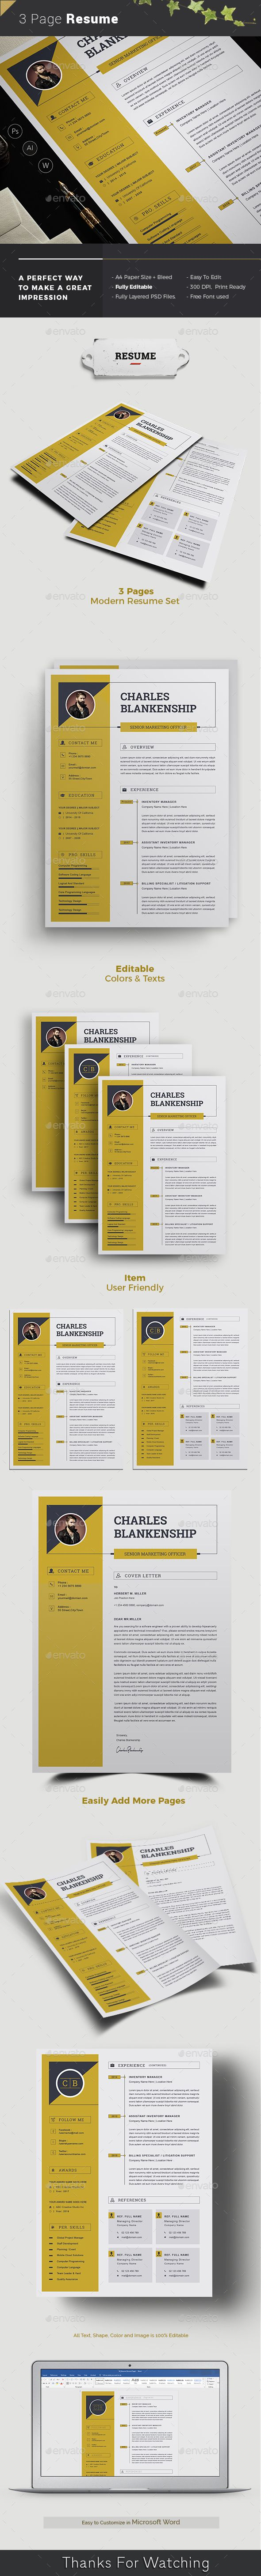 Resume Features Of Resume Template International A4 Paper Size